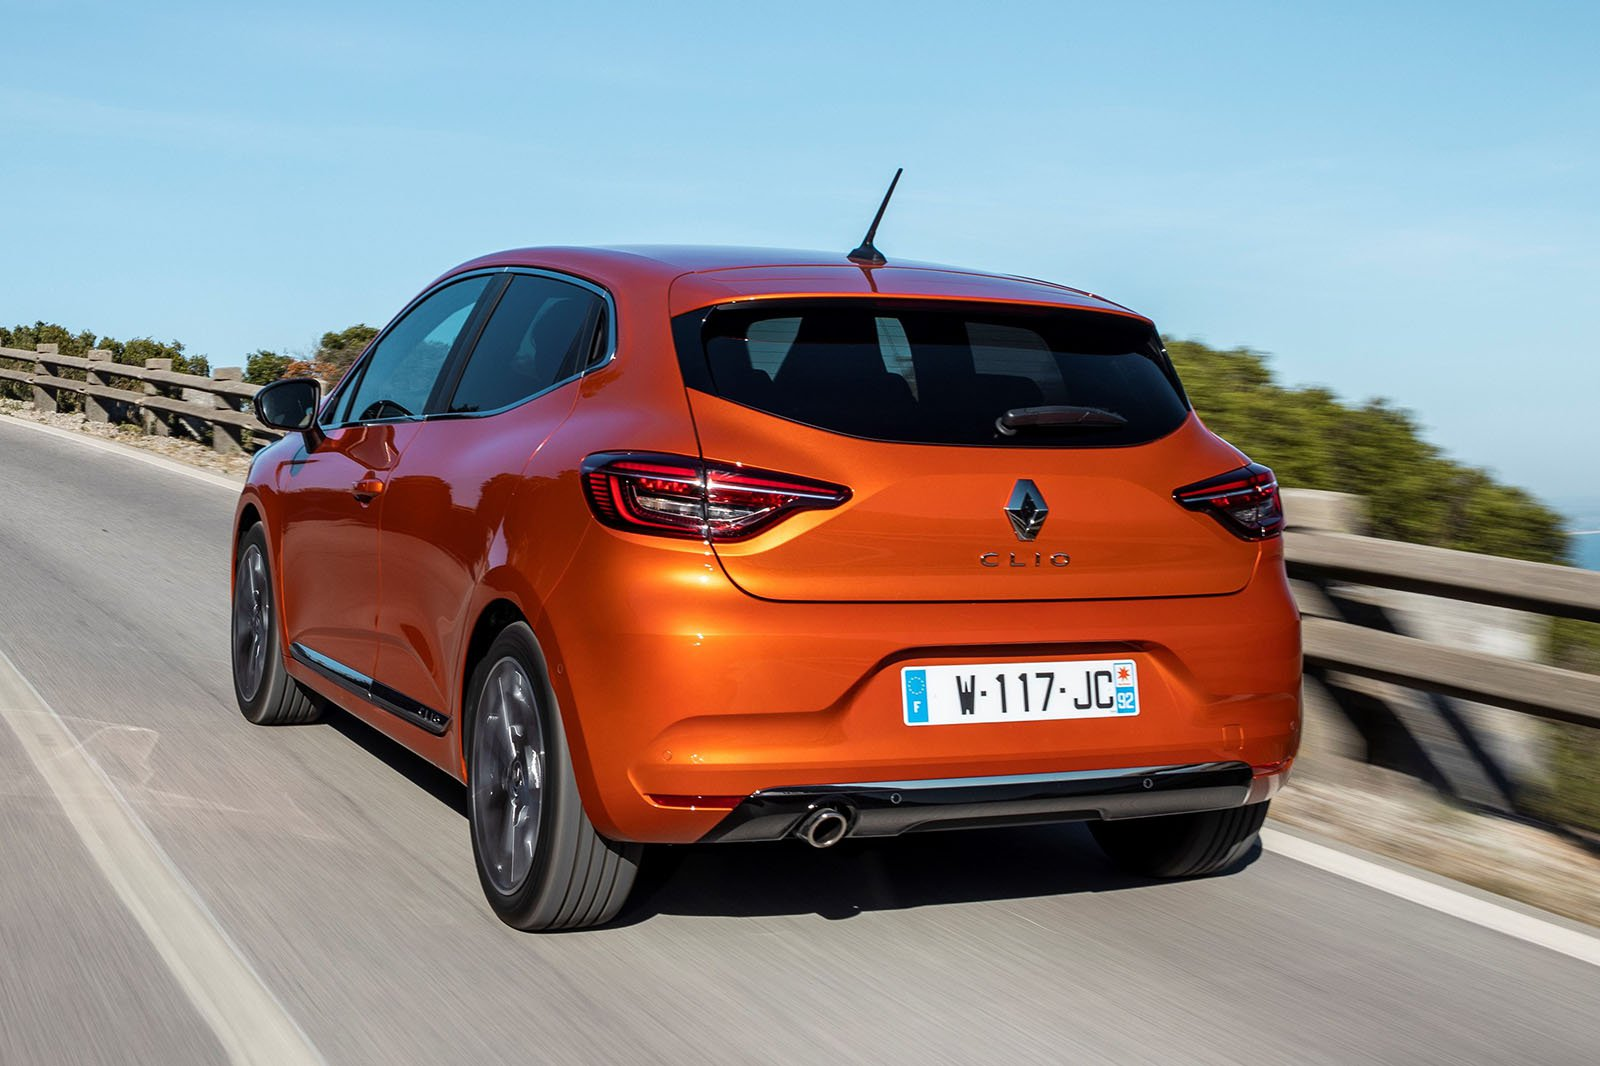 2019 Renault Clio TCe 100 rear three quarter